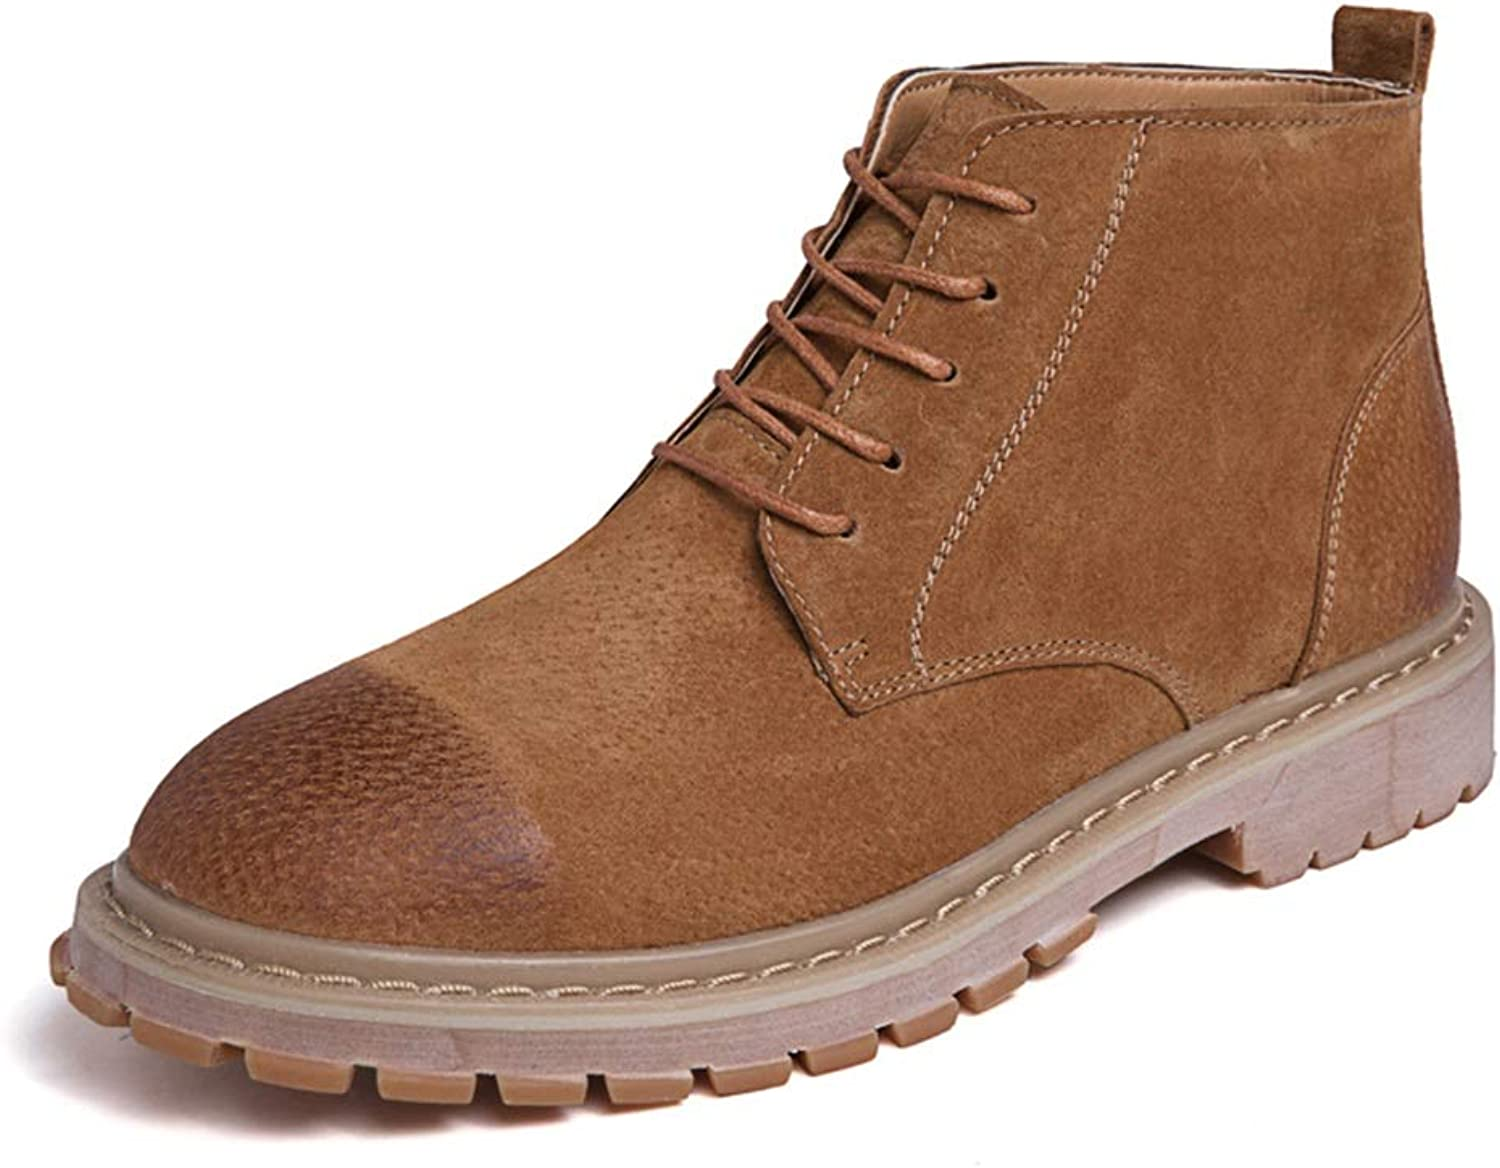 Men's shoes Retro Ankle Work Boot Casual Simple and Comfortable Classic High Top Boot Cricket shoes